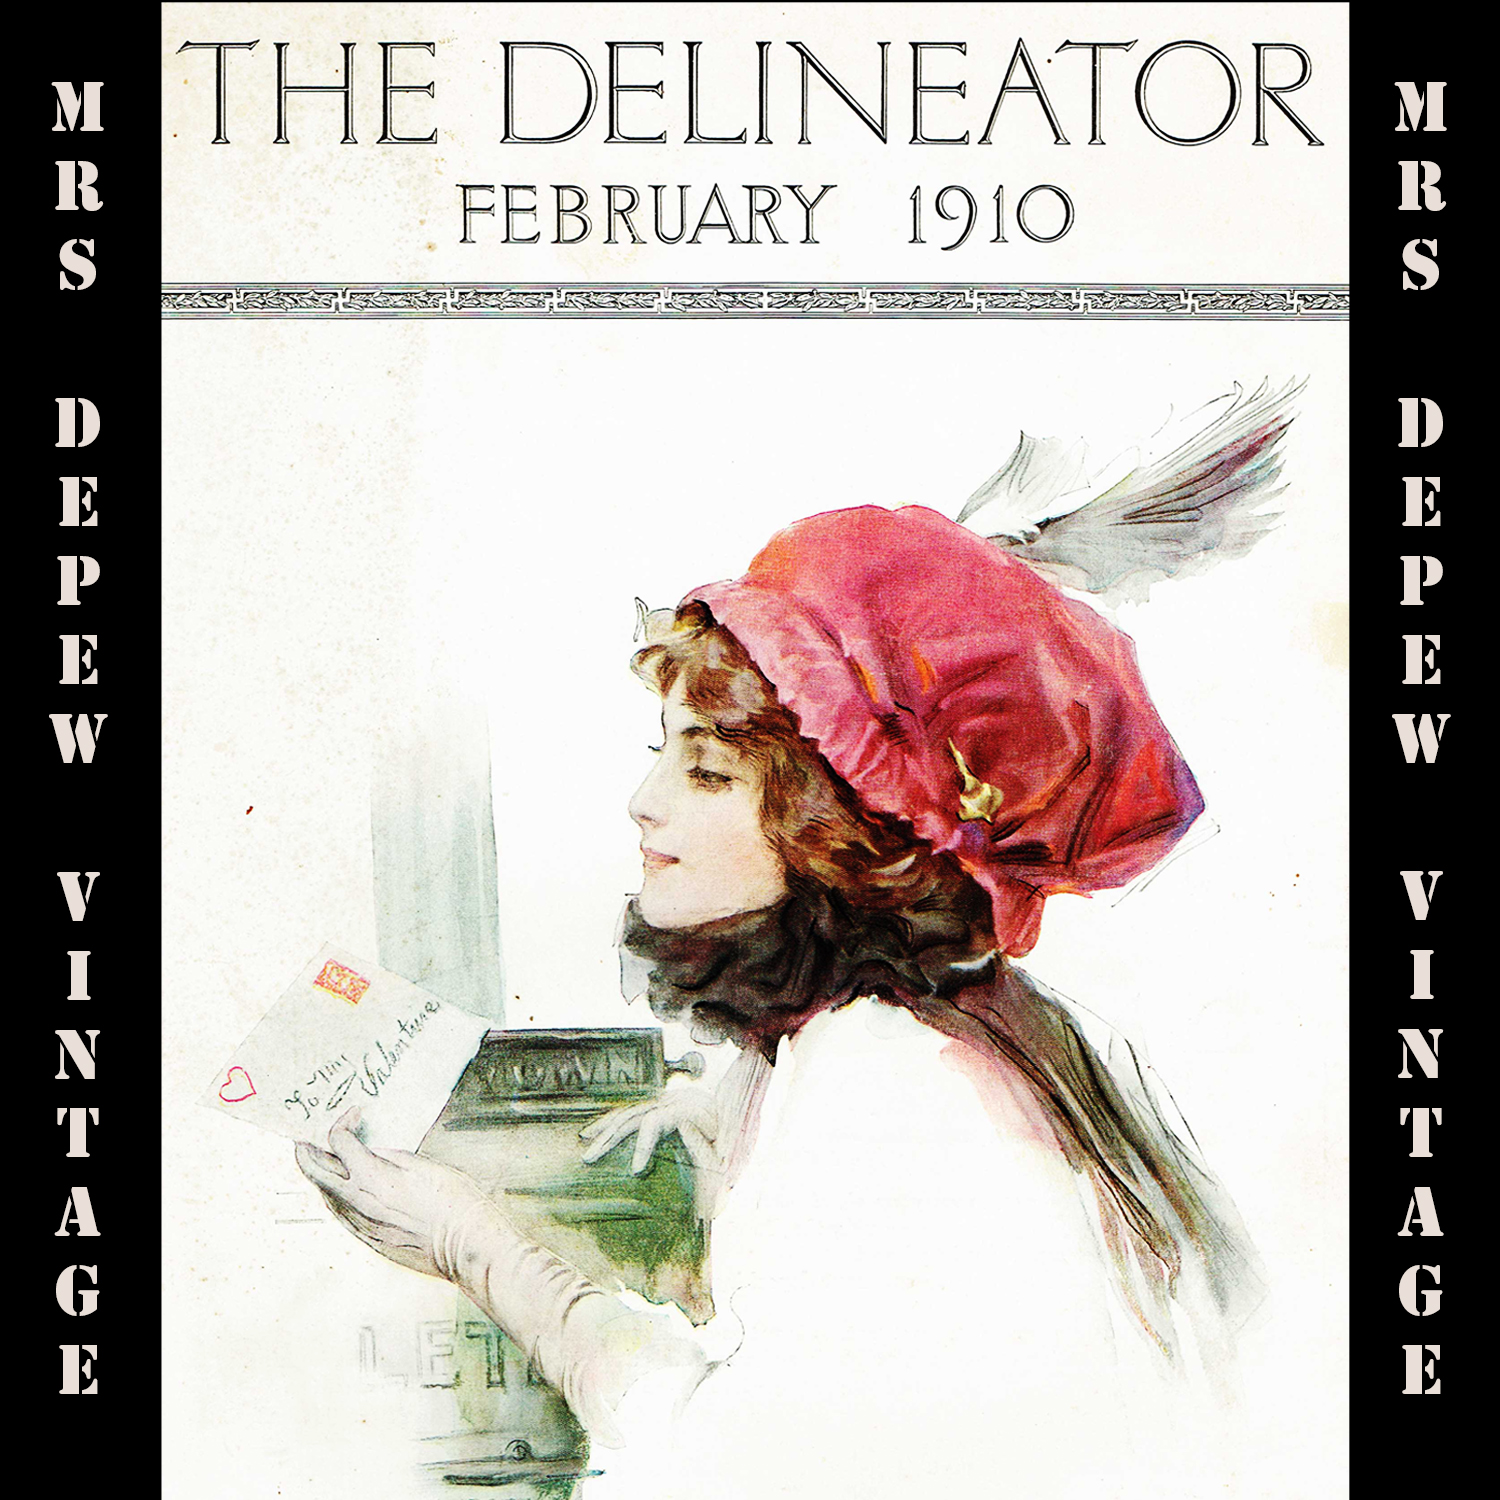 The Delineator February 1910